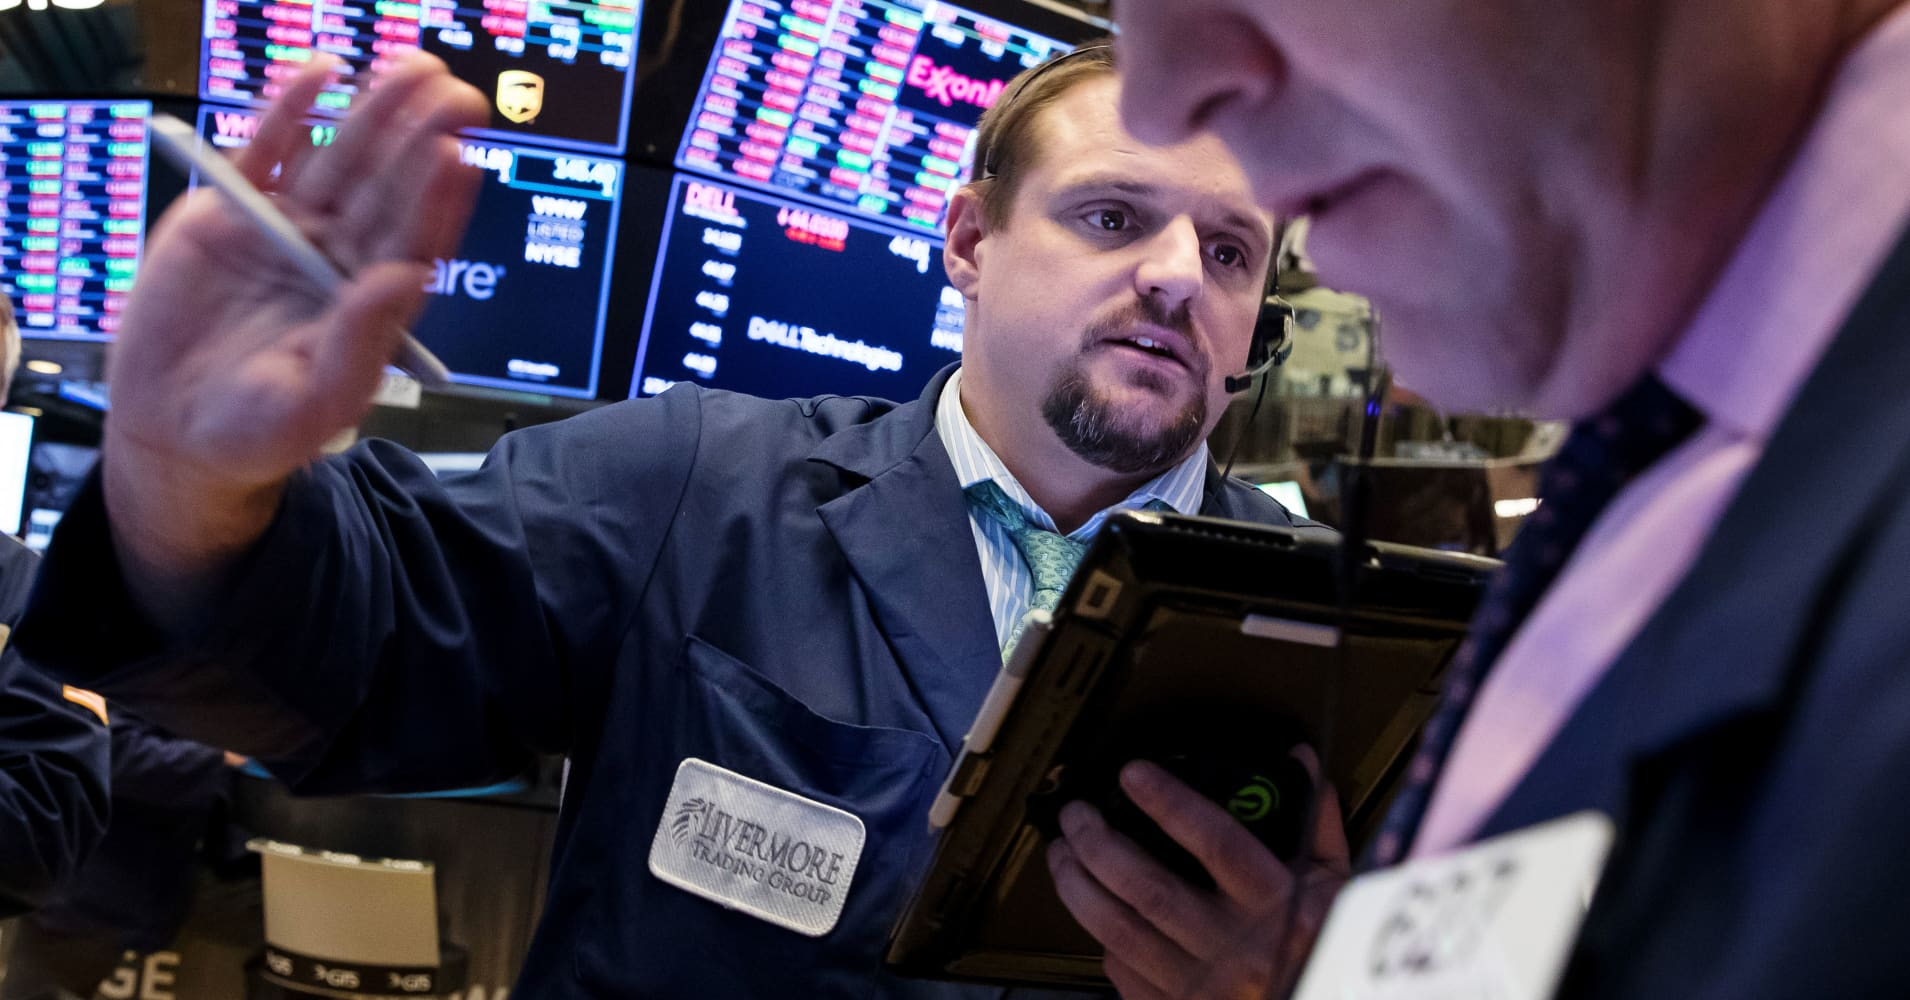 cnbc.com - Sam Meredith - Dow futures point to slightly lower open as growth concerns persist